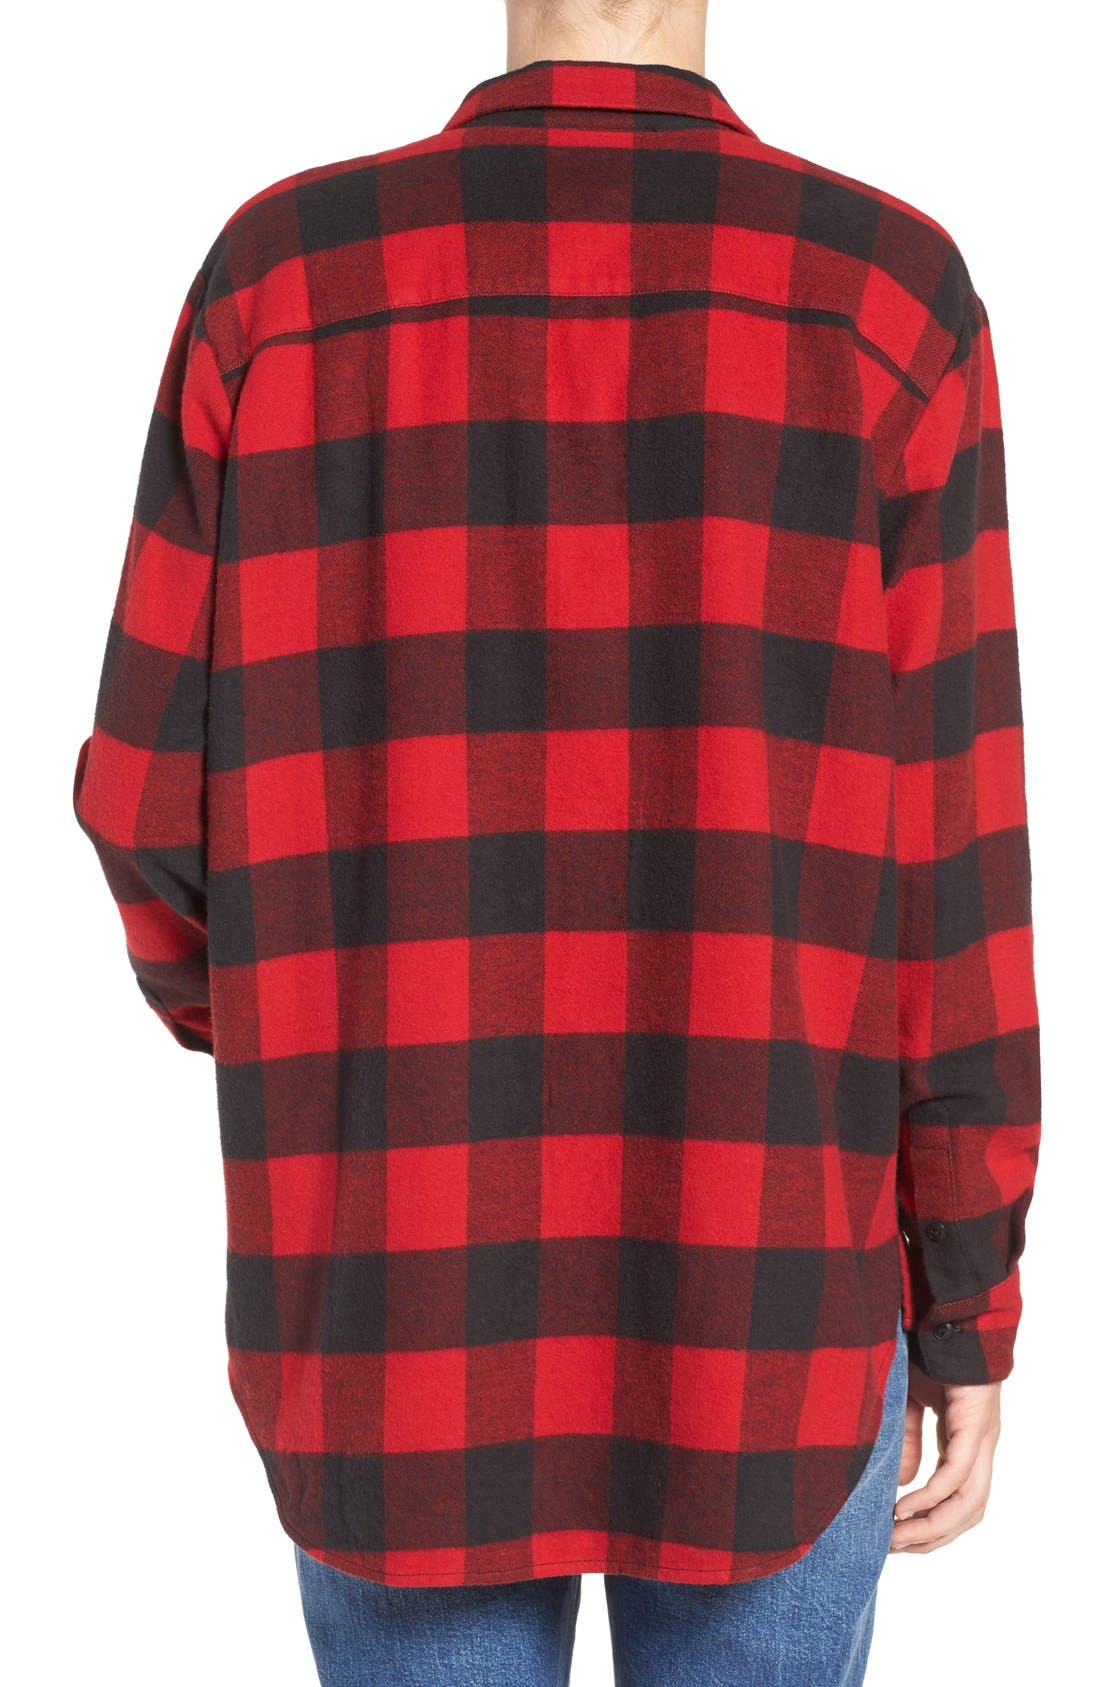 Ex-Boyfriend Oversize Boyfriend Shirt,                             Alternate thumbnail 8, color,                             600